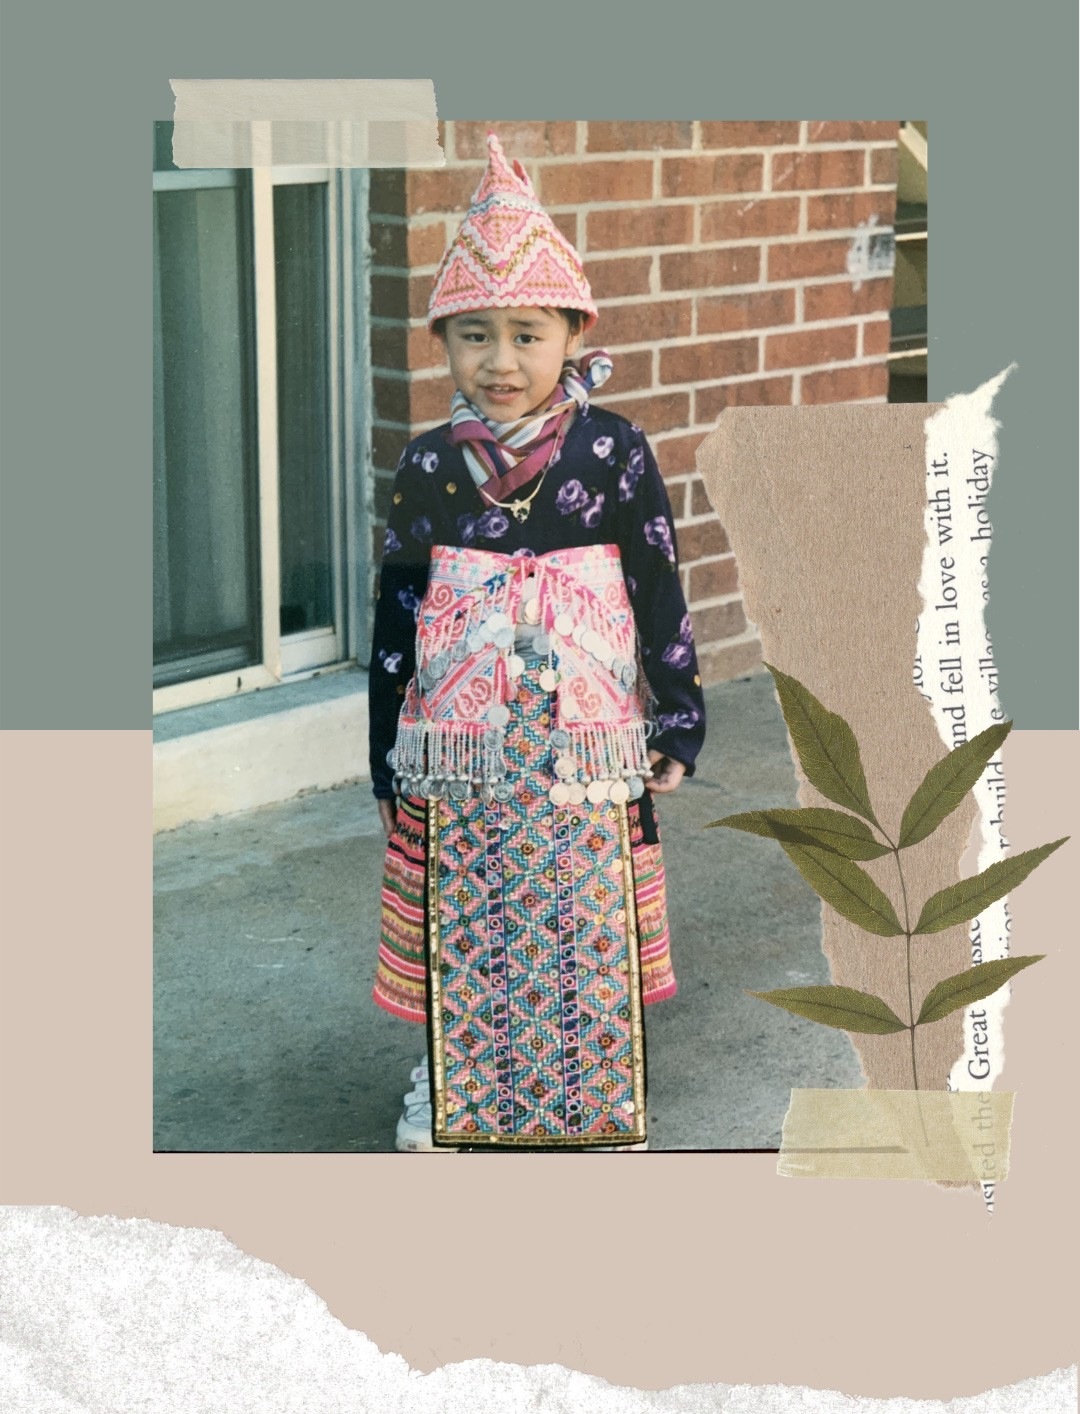 Toddler Sunshine sporting a very heavy traditional Hmong attire.